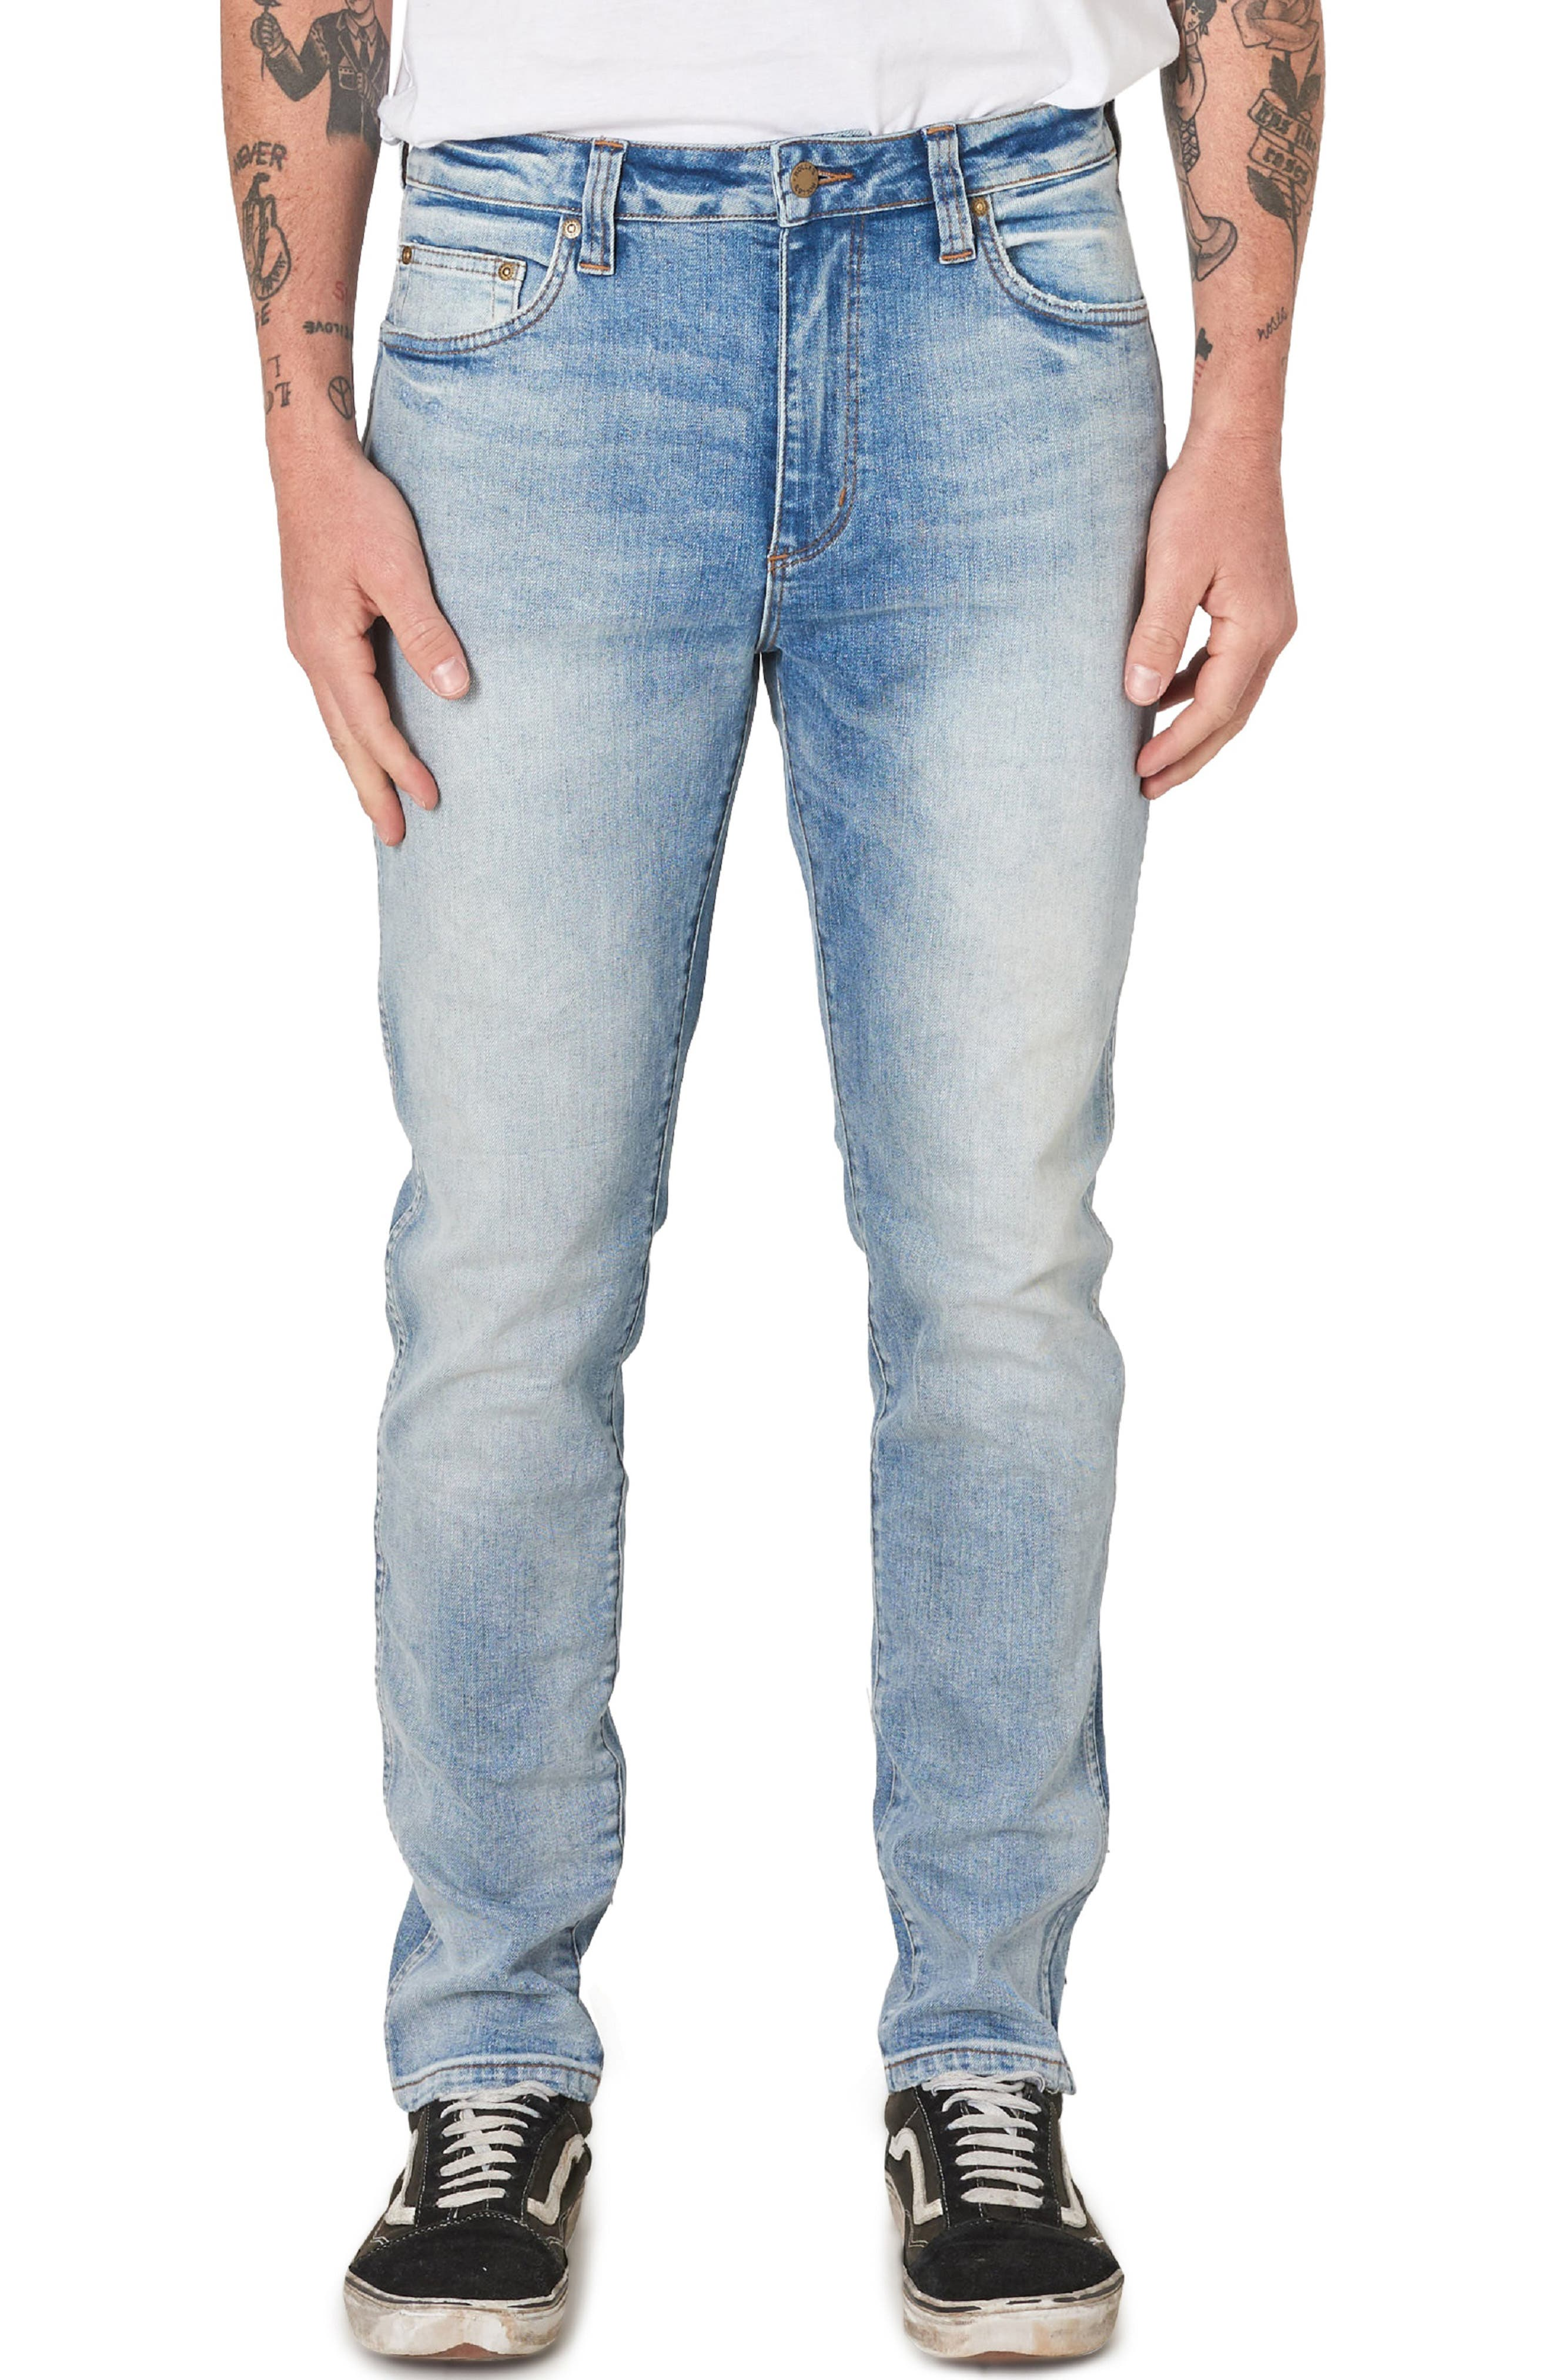 ROLLA'S Tim Slim Fit Jeans in Dingo Blue